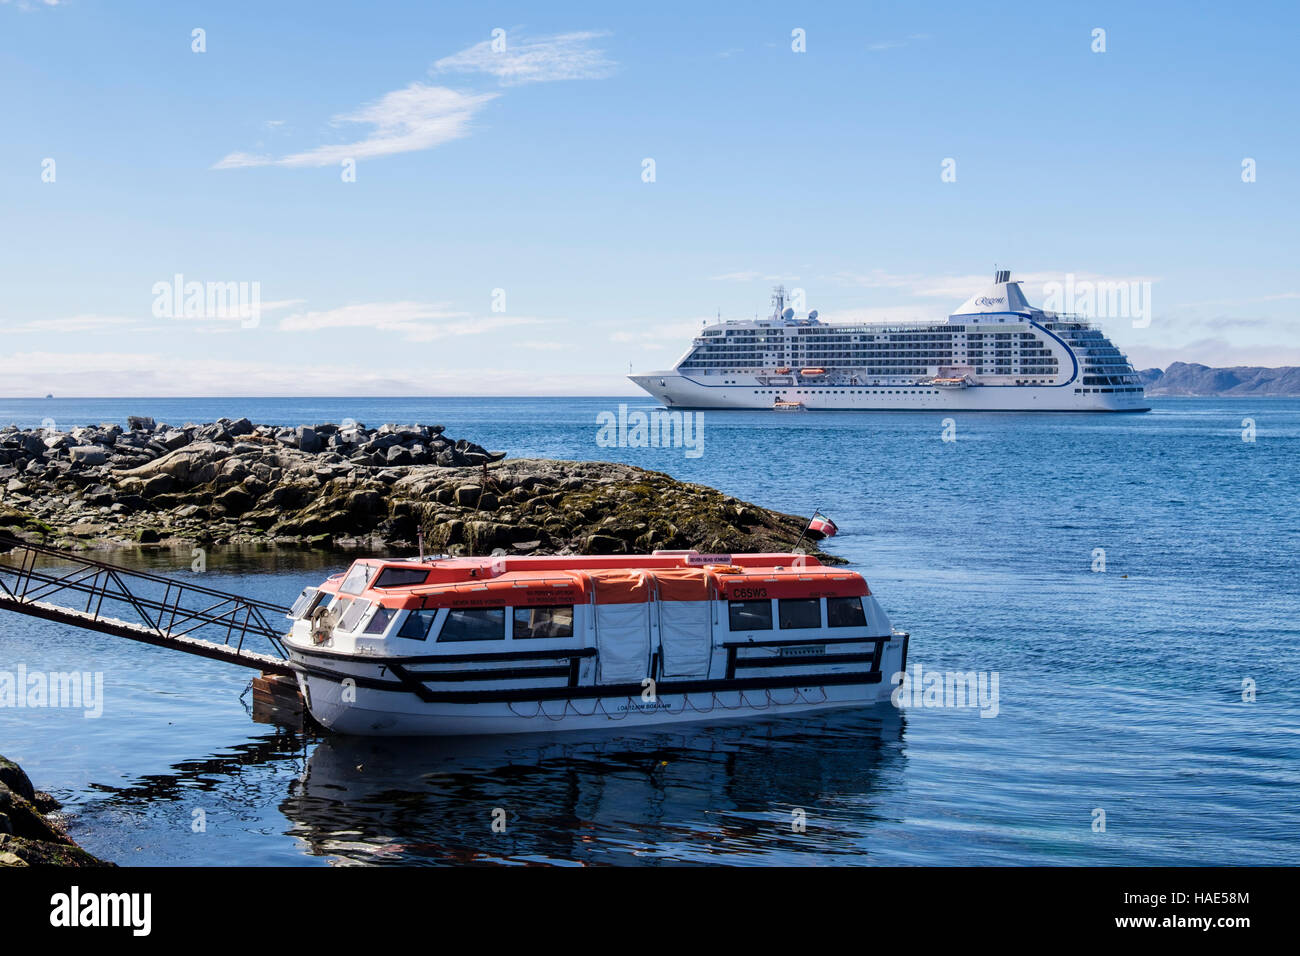 Tender boat carrying passengers ashore from ocean cruise liner Seven Seas Voyager moored offshore. Nuuk Western - Stock Image